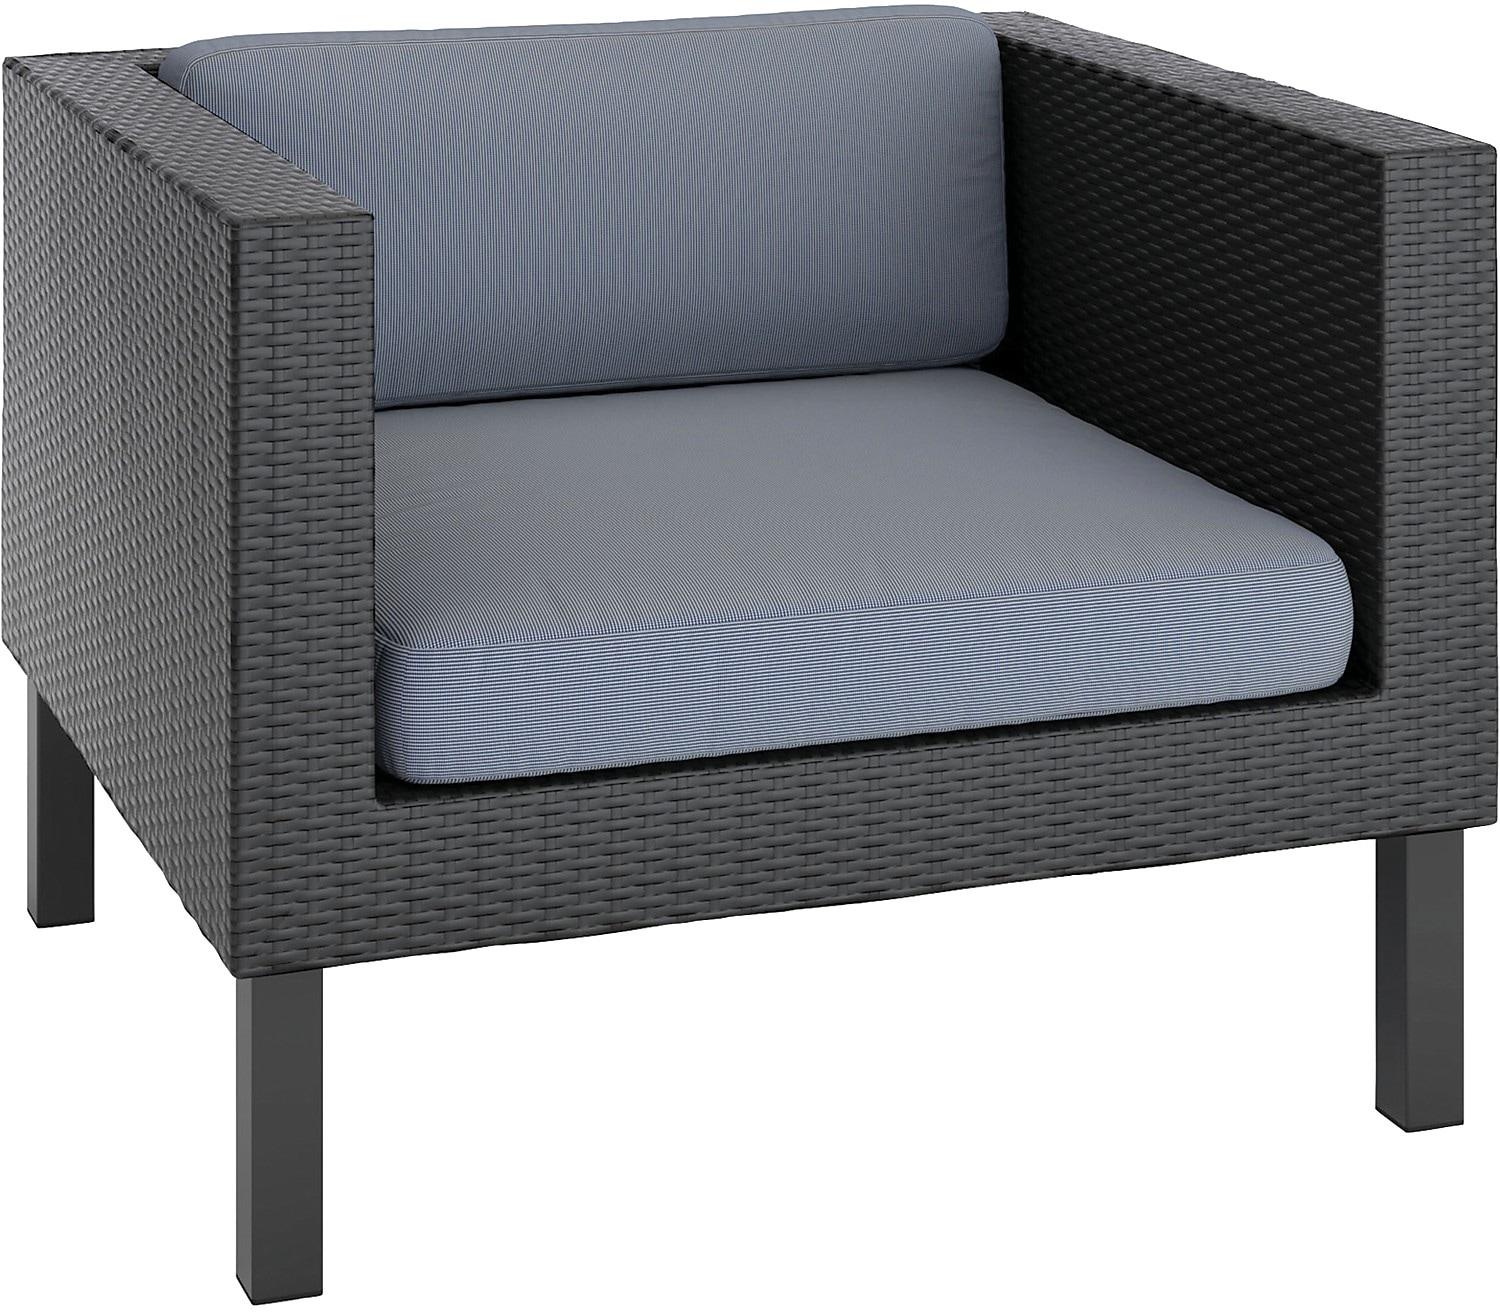 Outdoor Furniture - Oakland Patio Chair